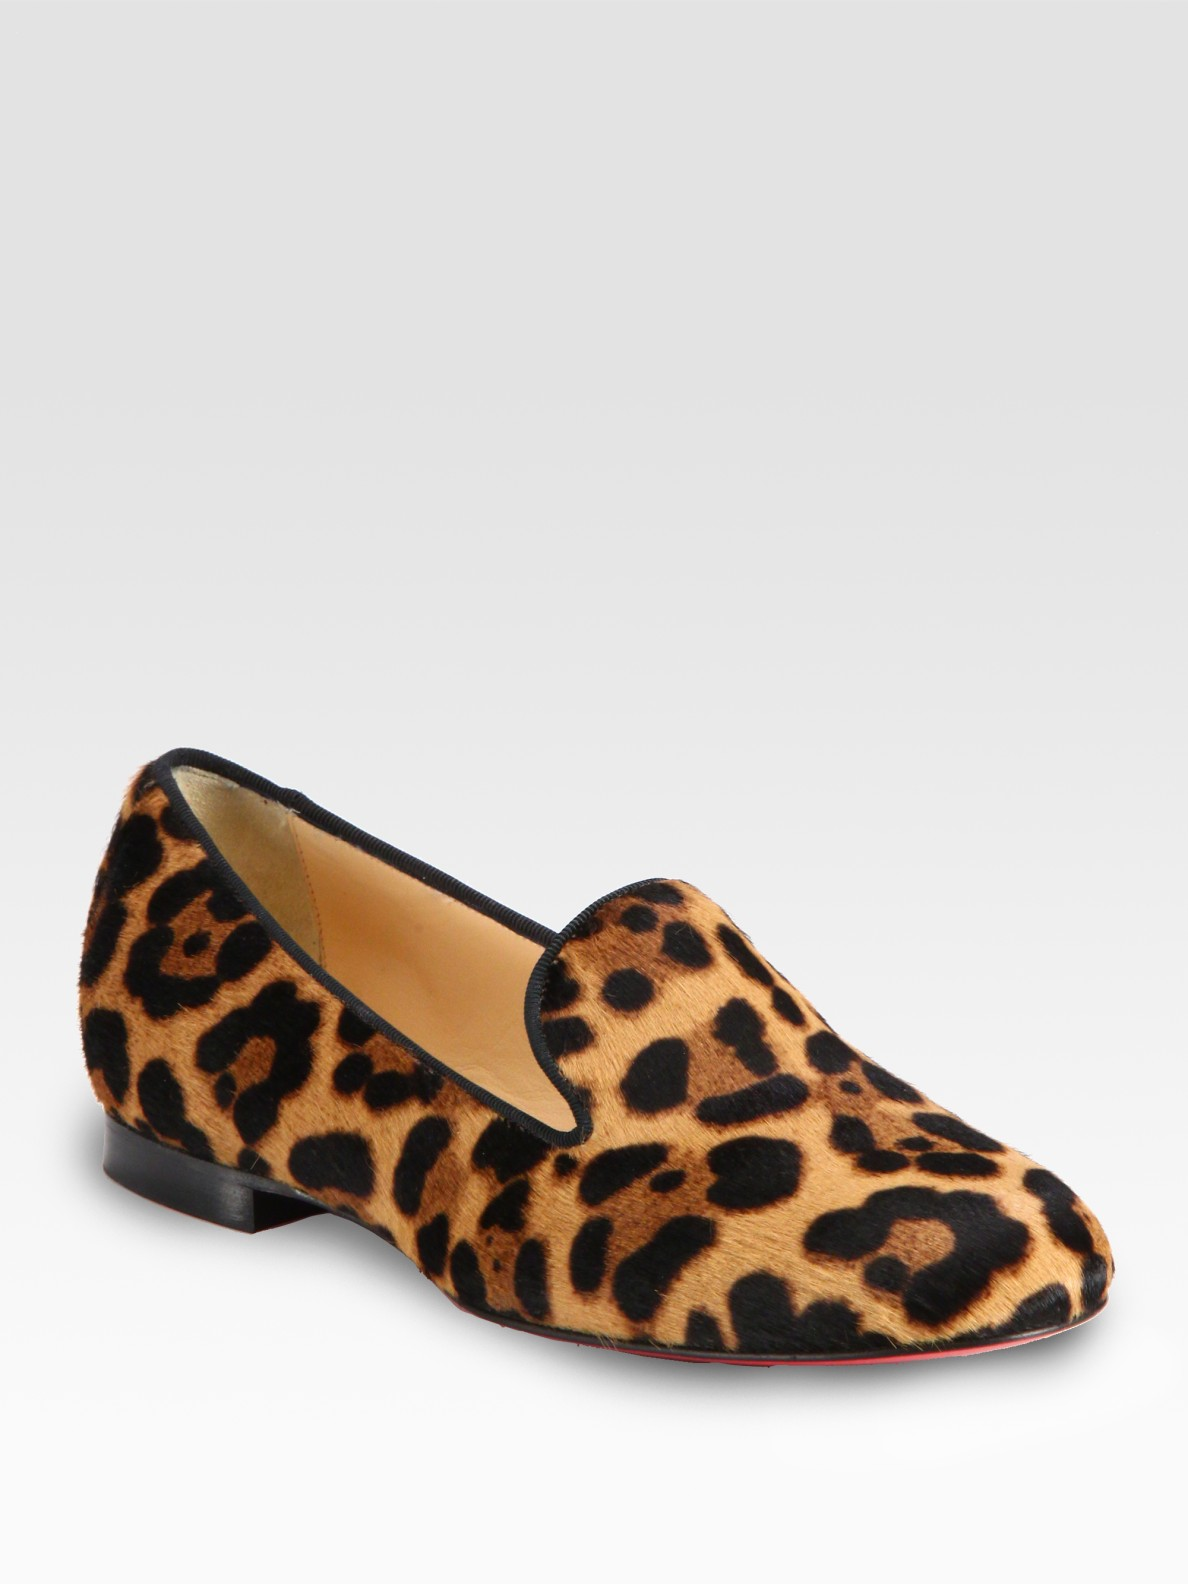 louis vuitton replica mens shoes - Peony Design ? christian louboutin leopard loafers